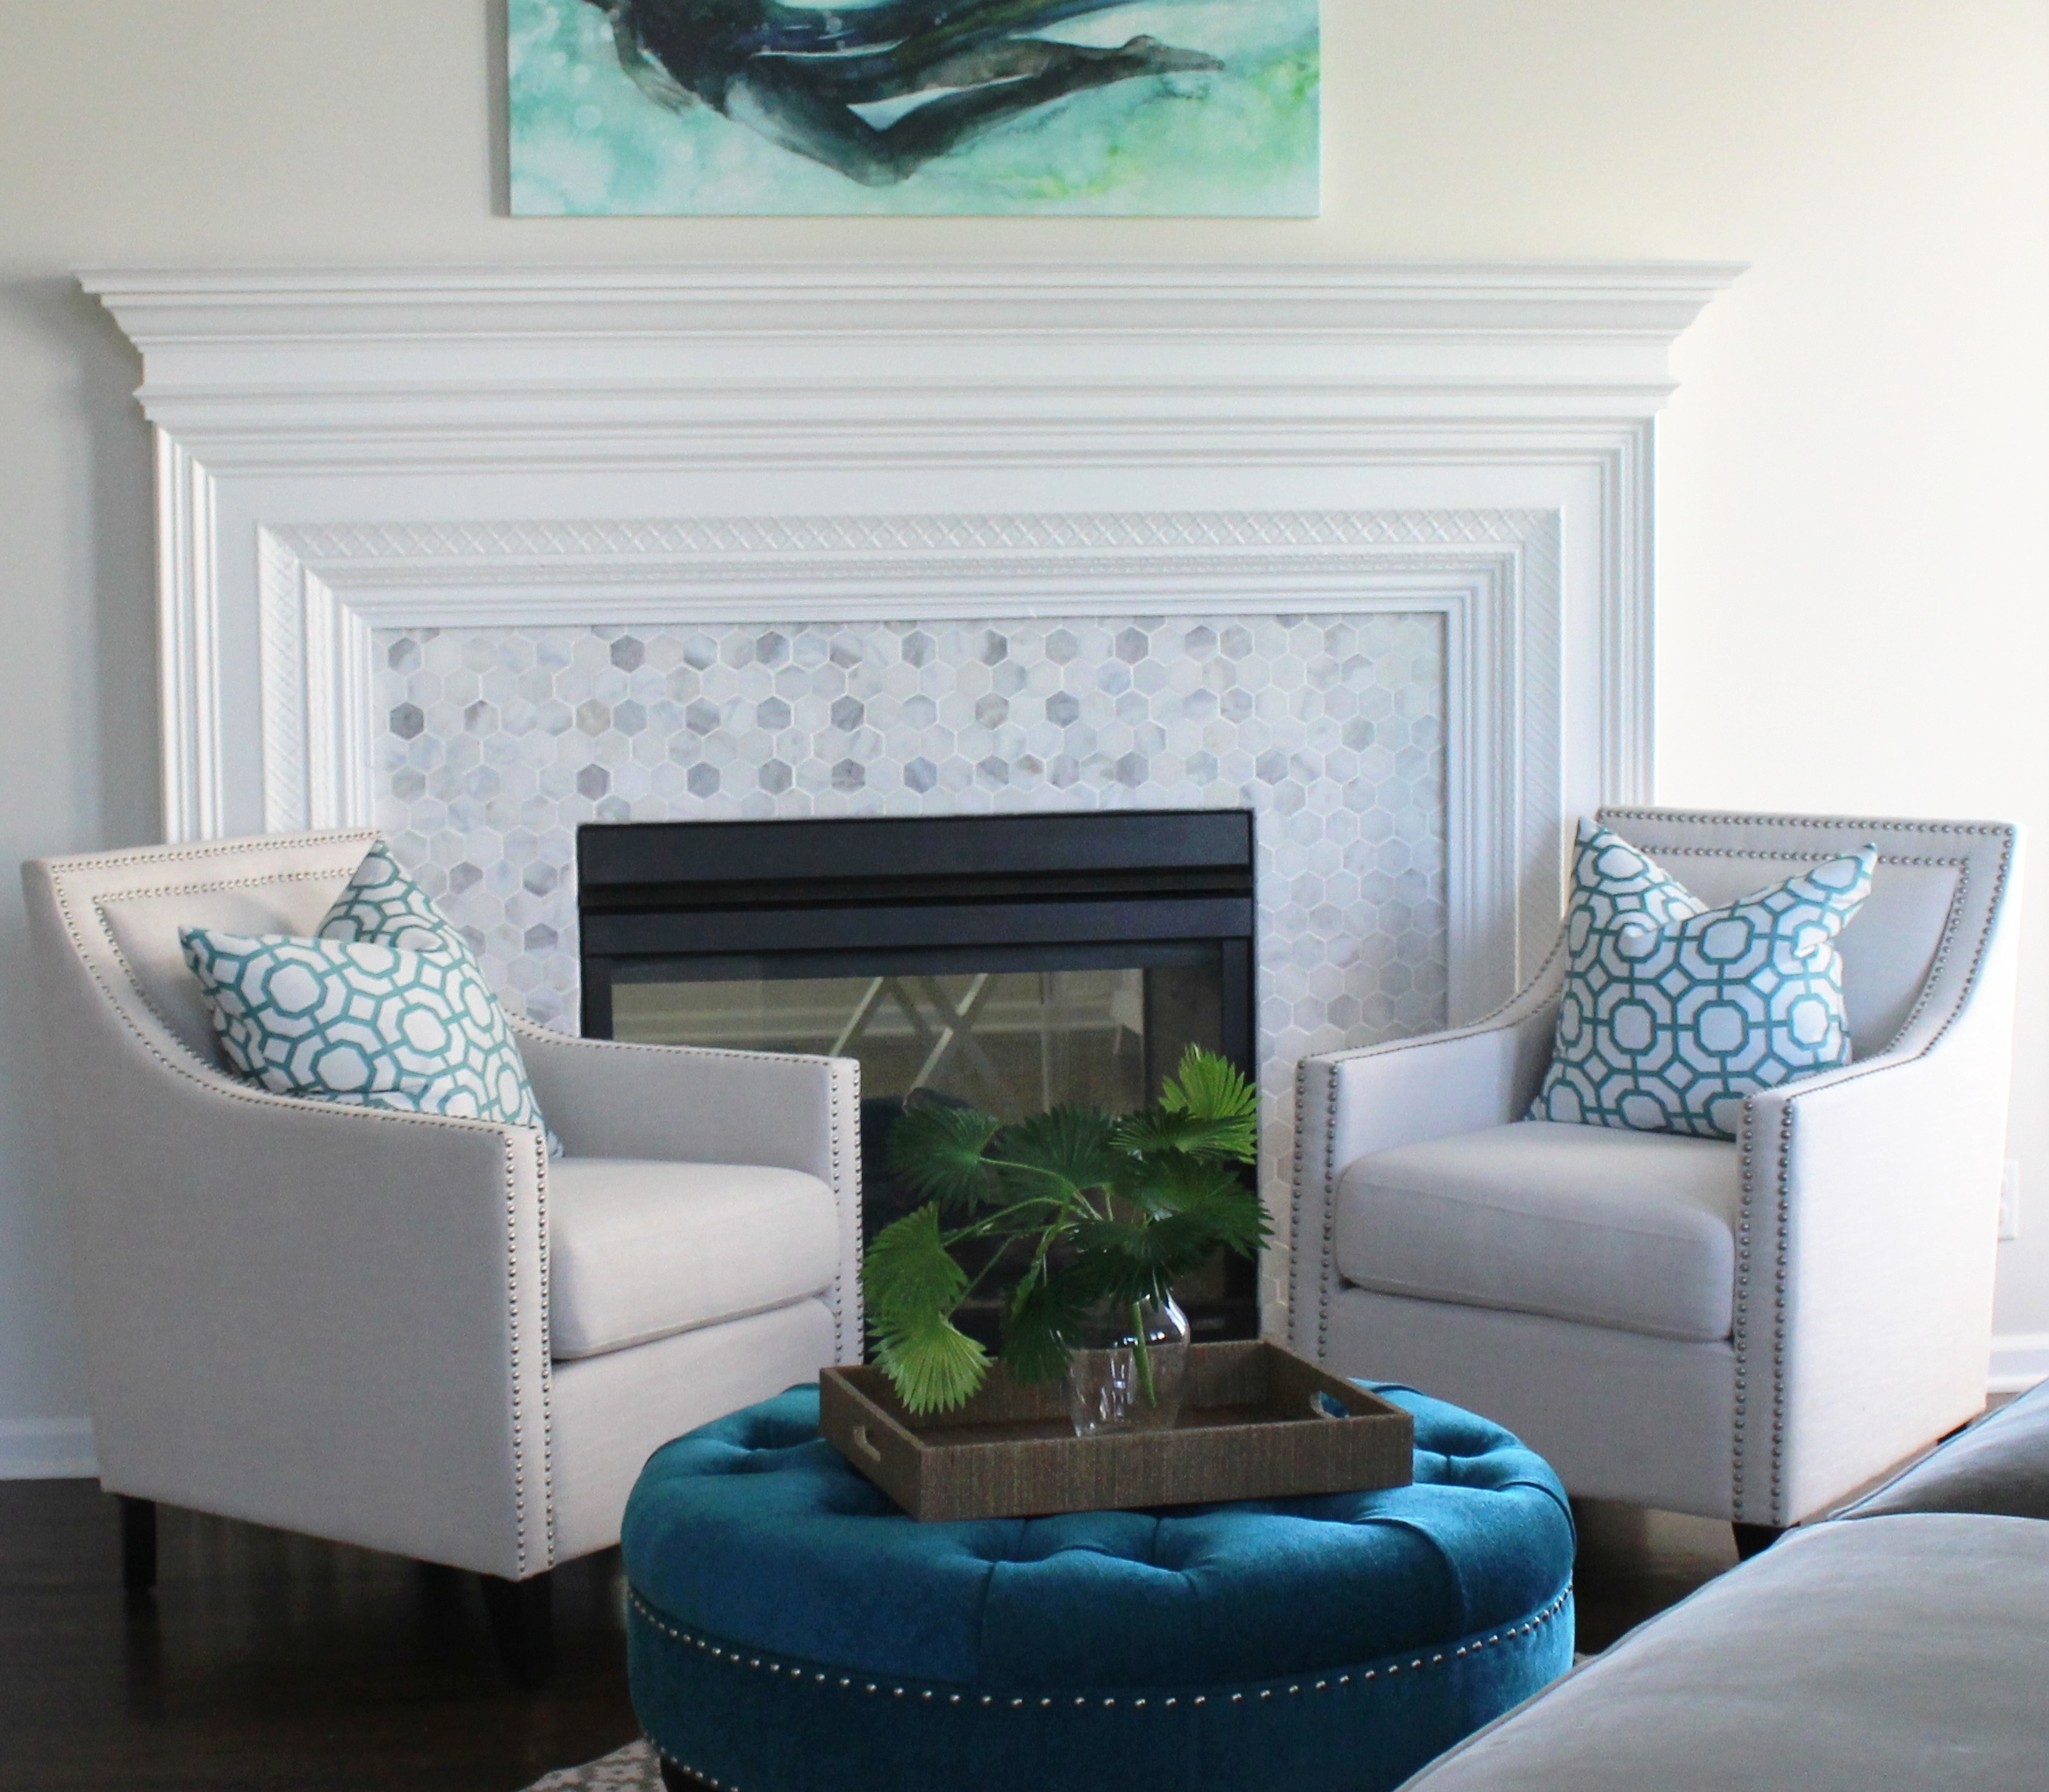 Modern Living Room Blog interior design: 3 savvy ways to makeover your living room using